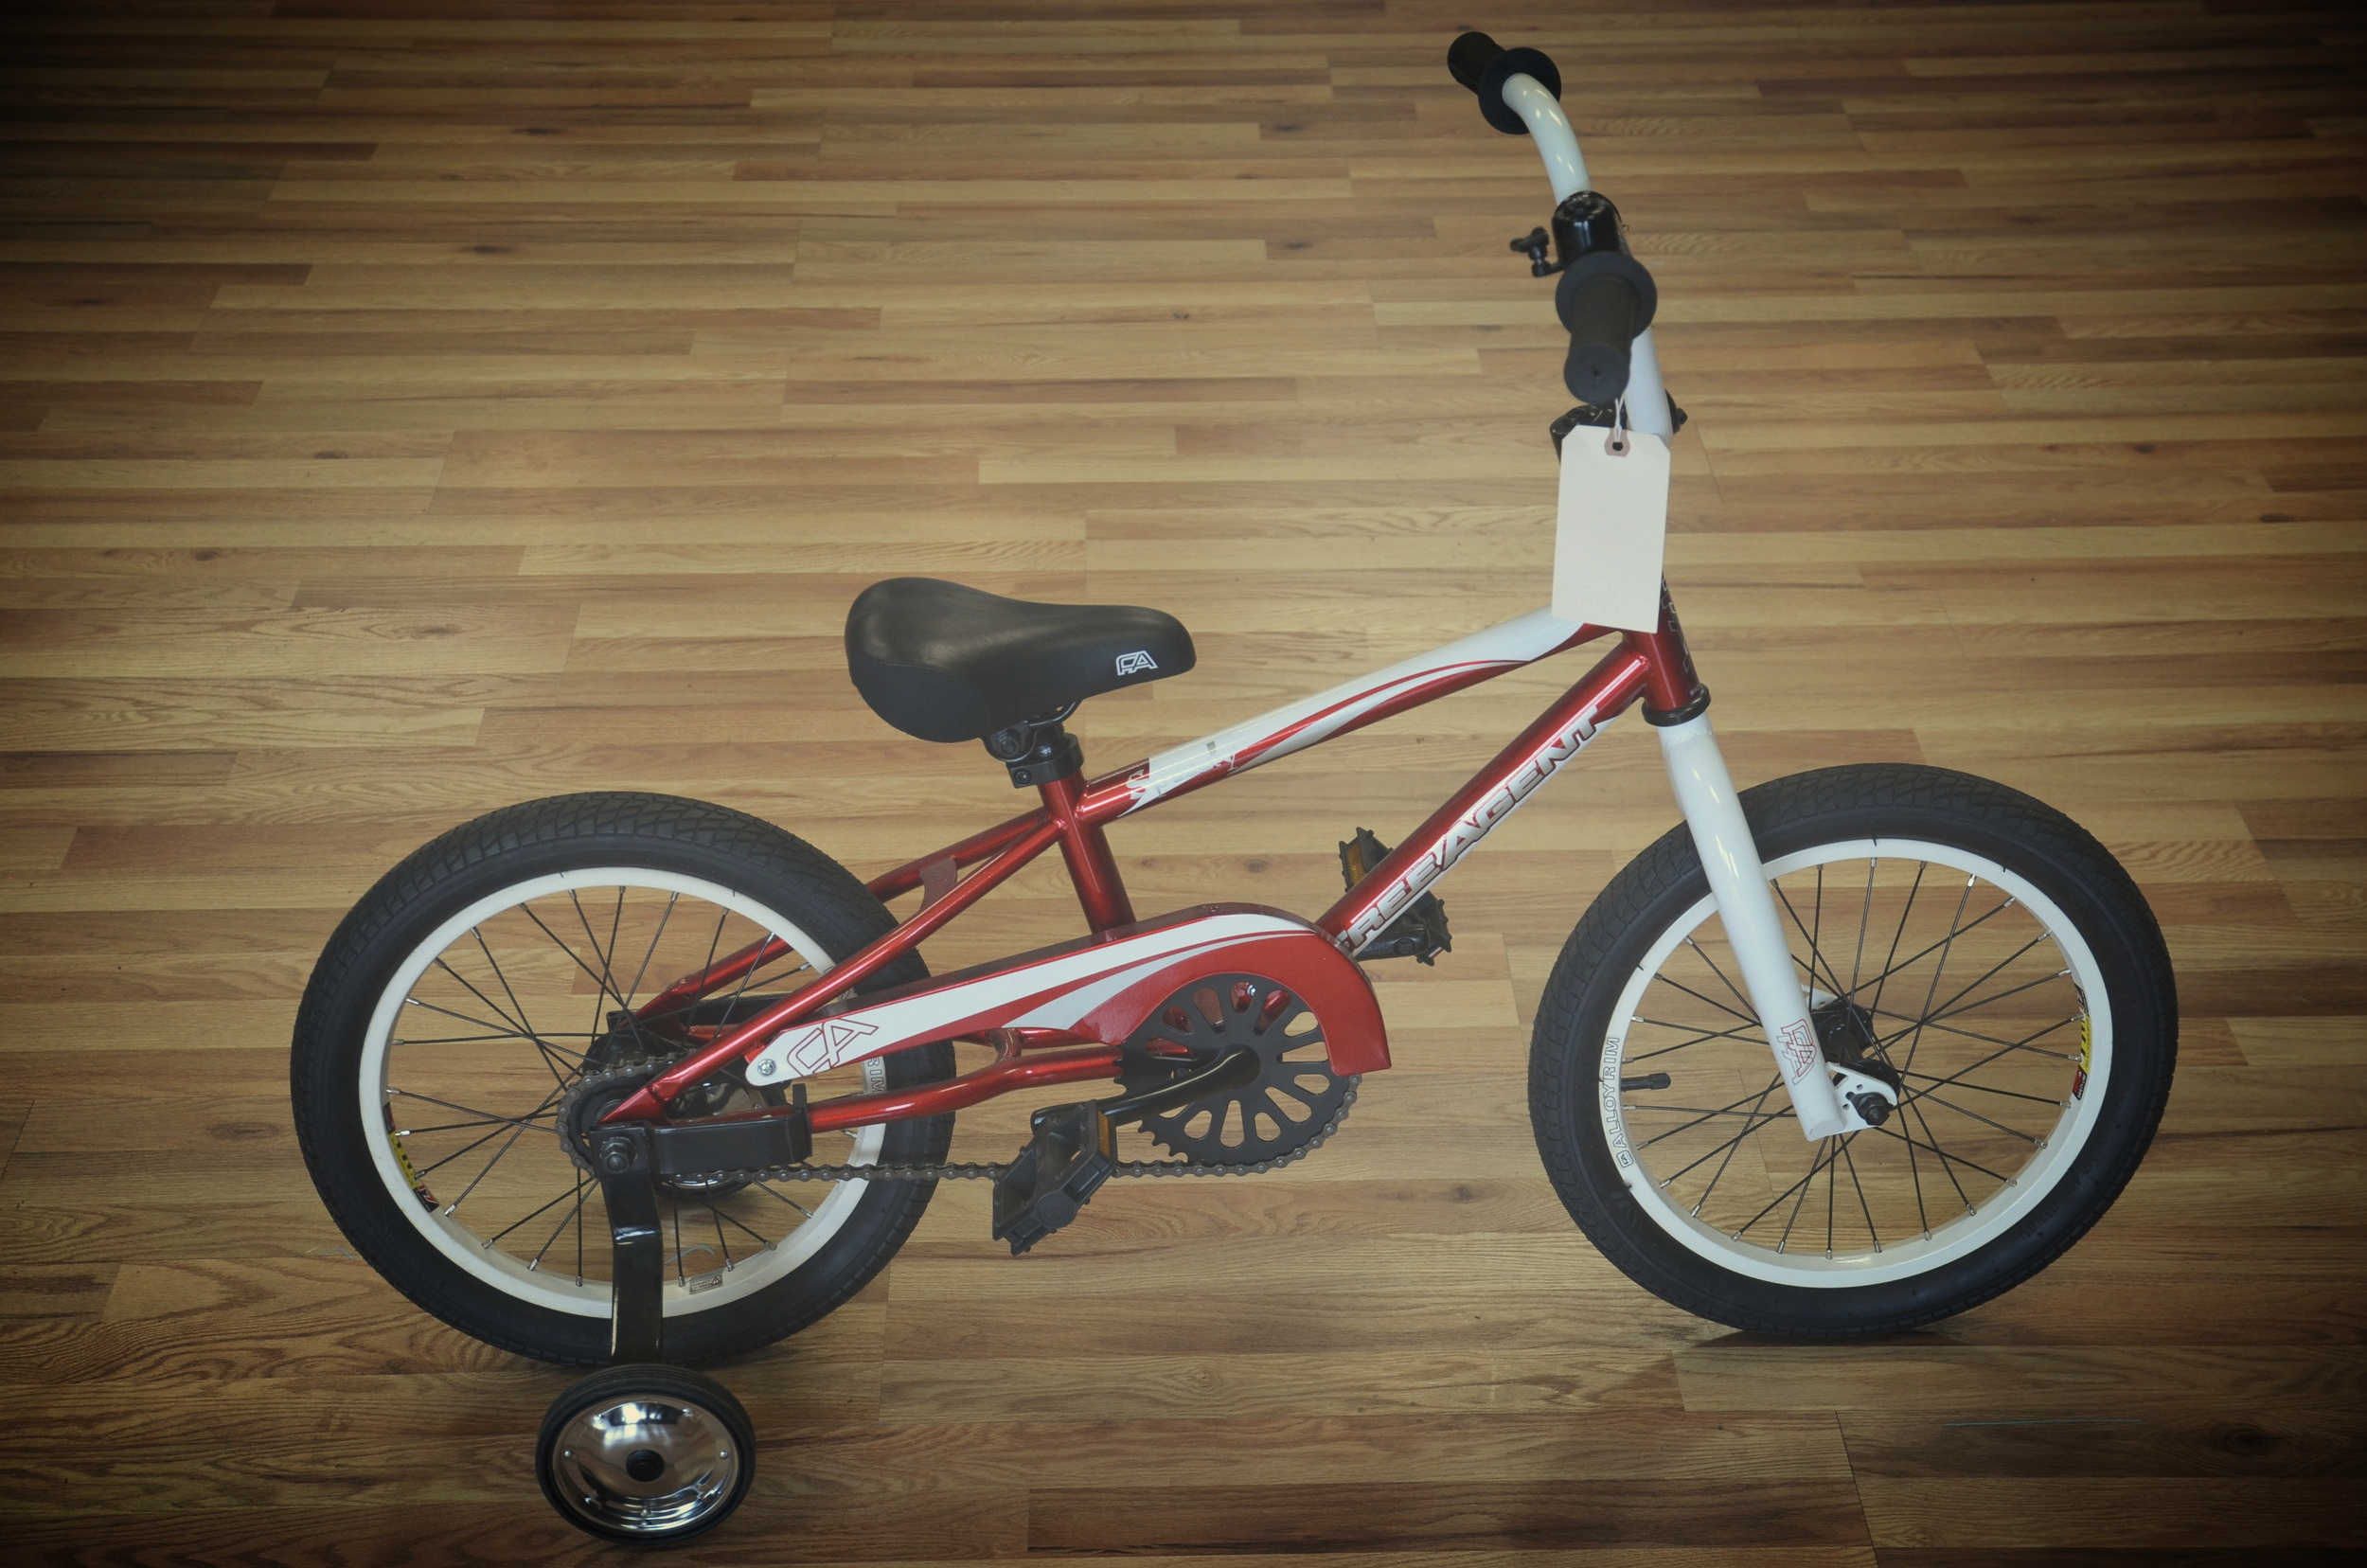 Free Agent Kiddo's Bike